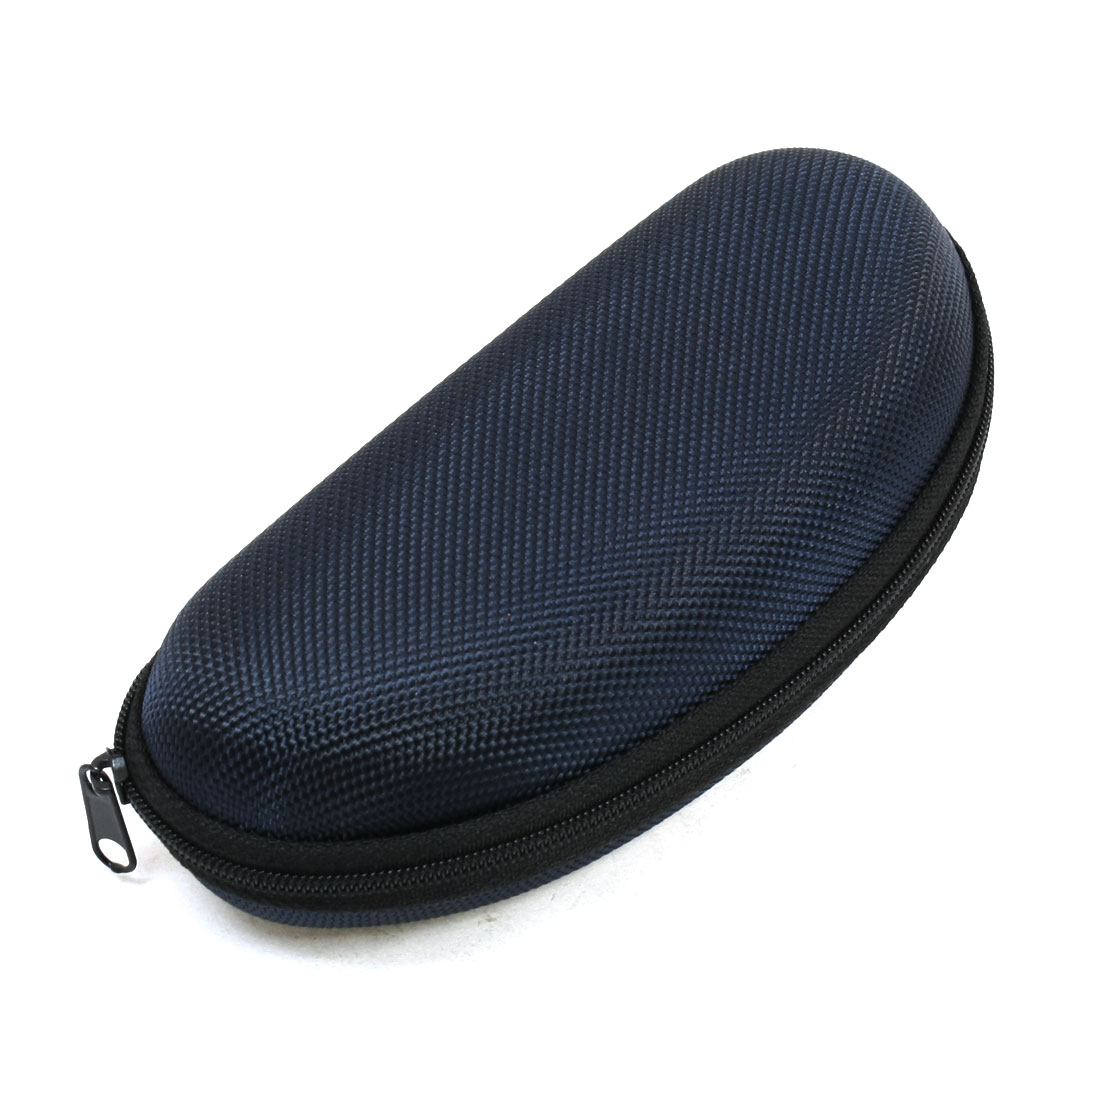 Zipper Up Carbon Fiber Print Fleece Lining Sunglasses Case Dark Blue